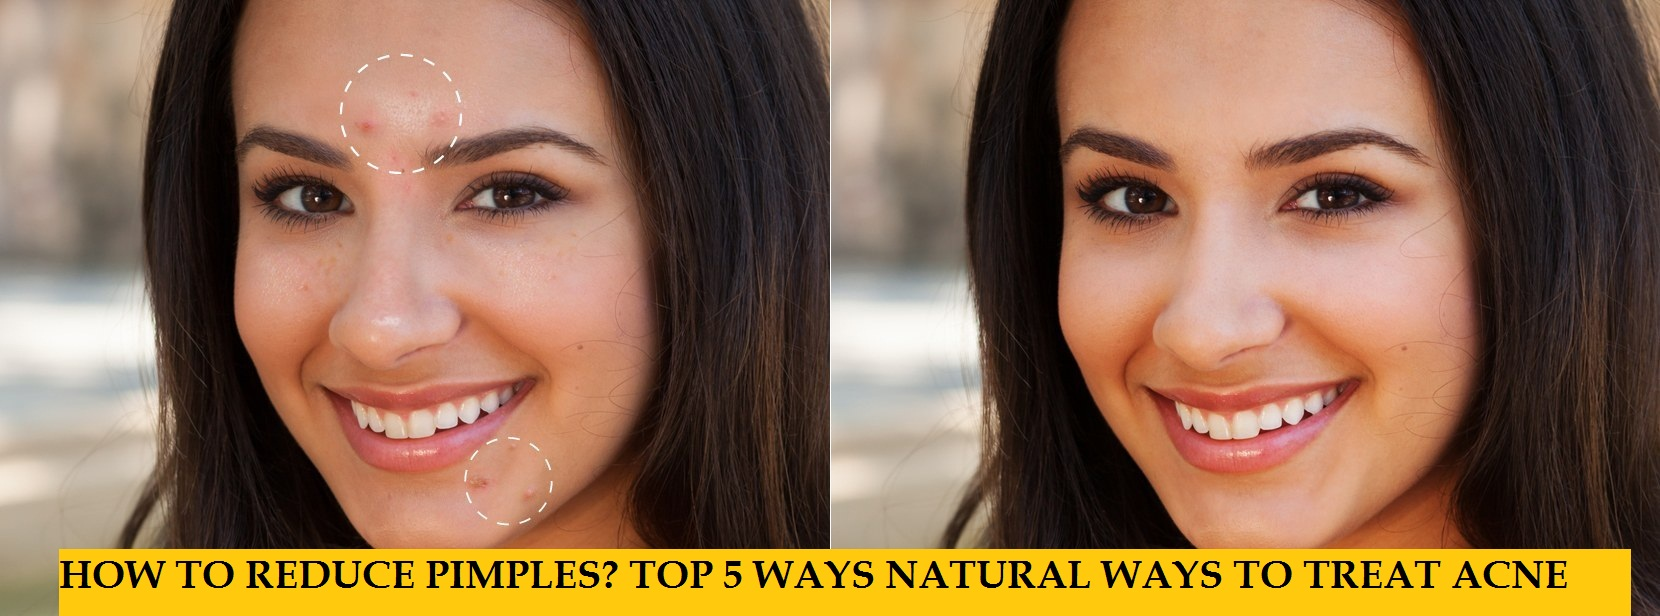 5 best ways to treat acne-pimples naturally